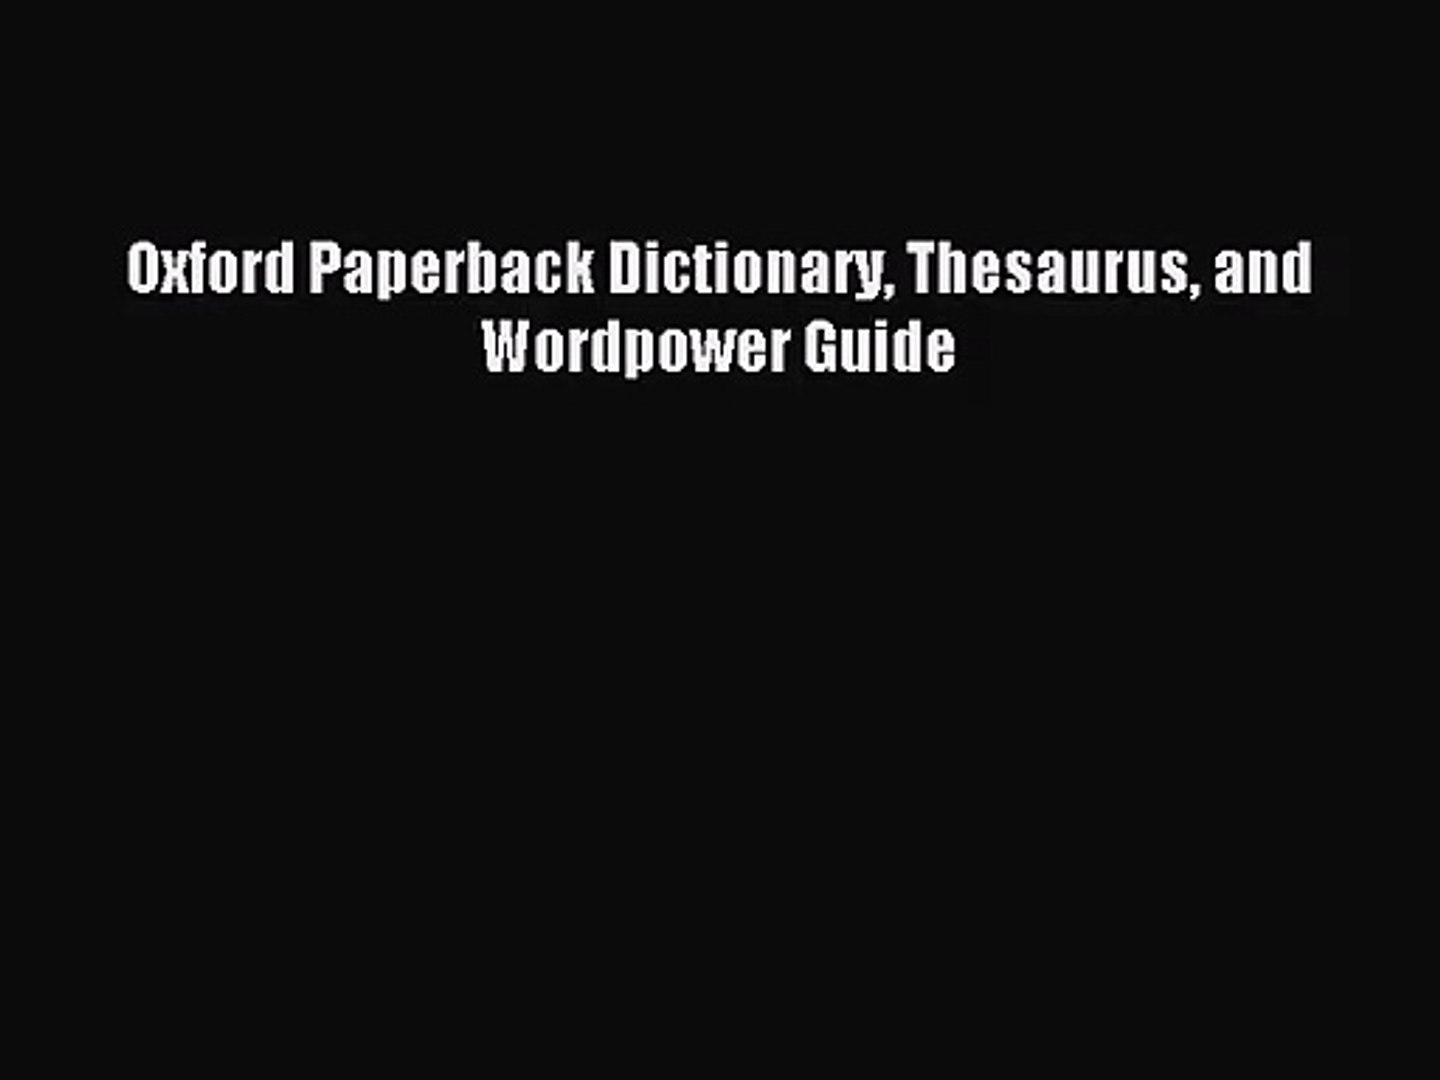 Pdf Download Oxford Paperback Dictionary Thesaurus And Wordpower Guide Read Full Ebook Video Dailymotion